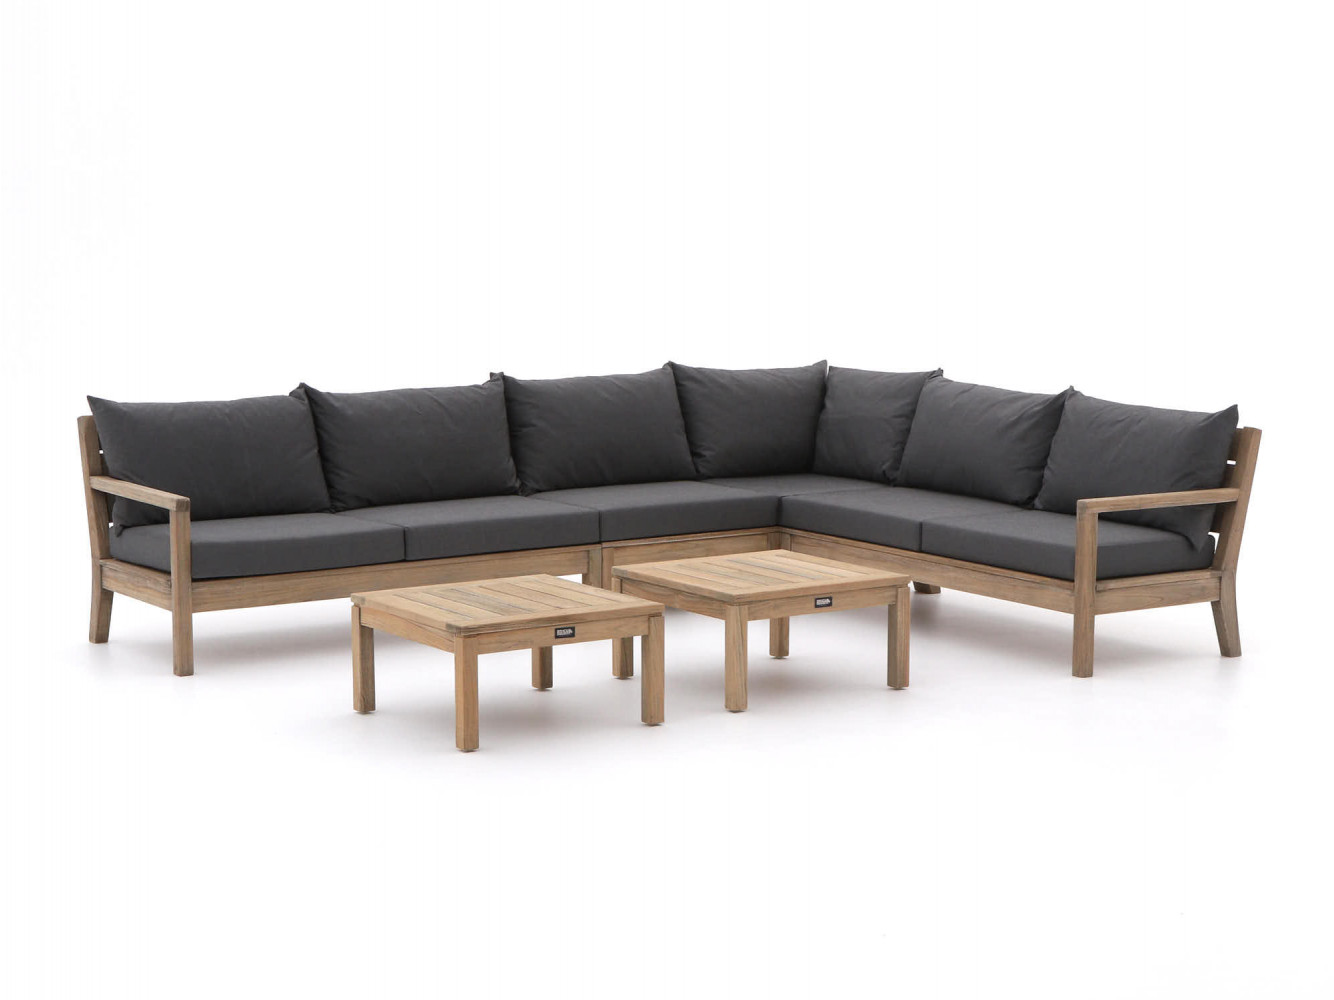 design hoek loungebank